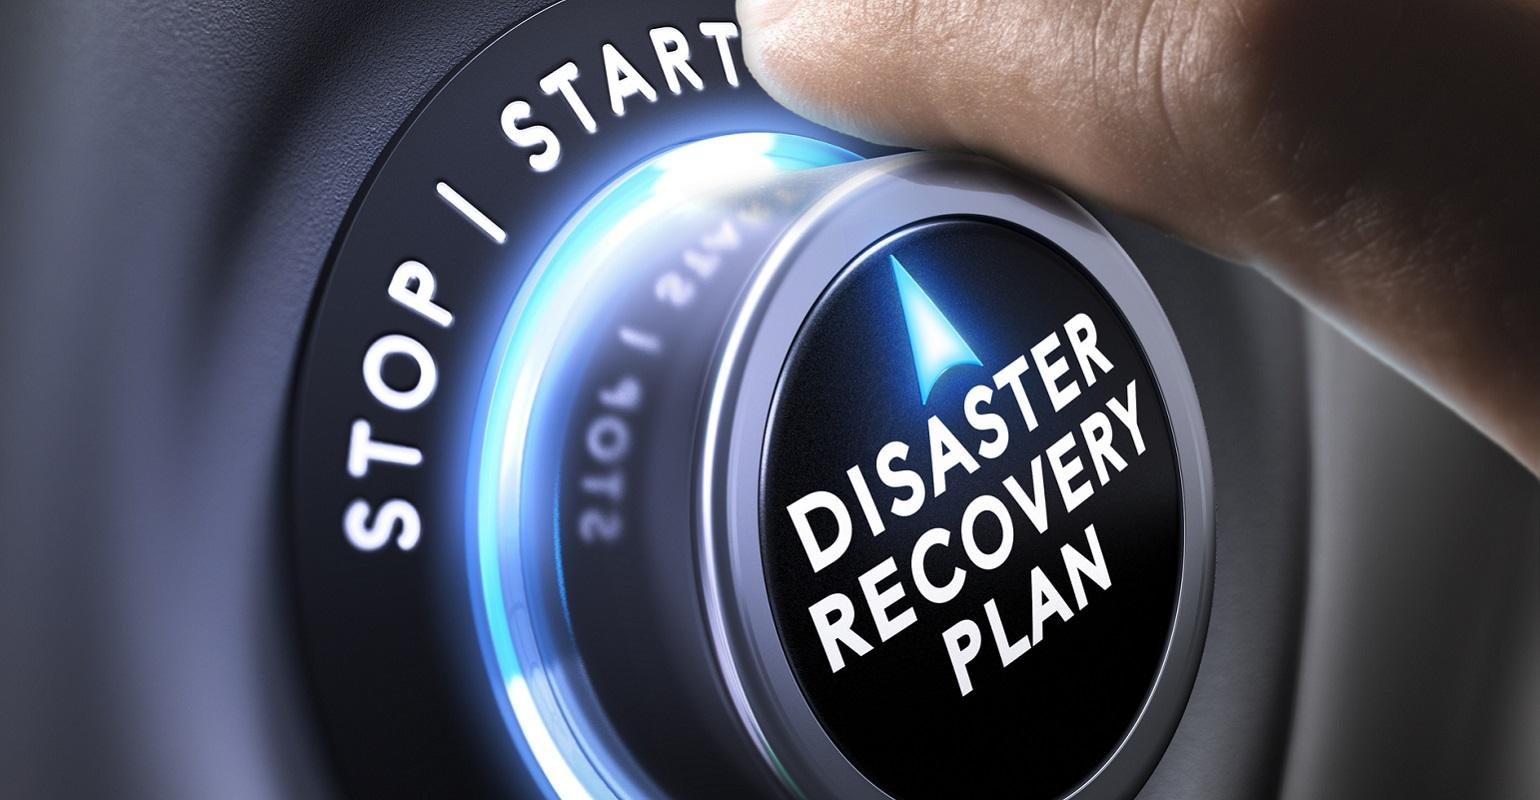 Your Disaster Recovery Plan Is Probably Out of Date